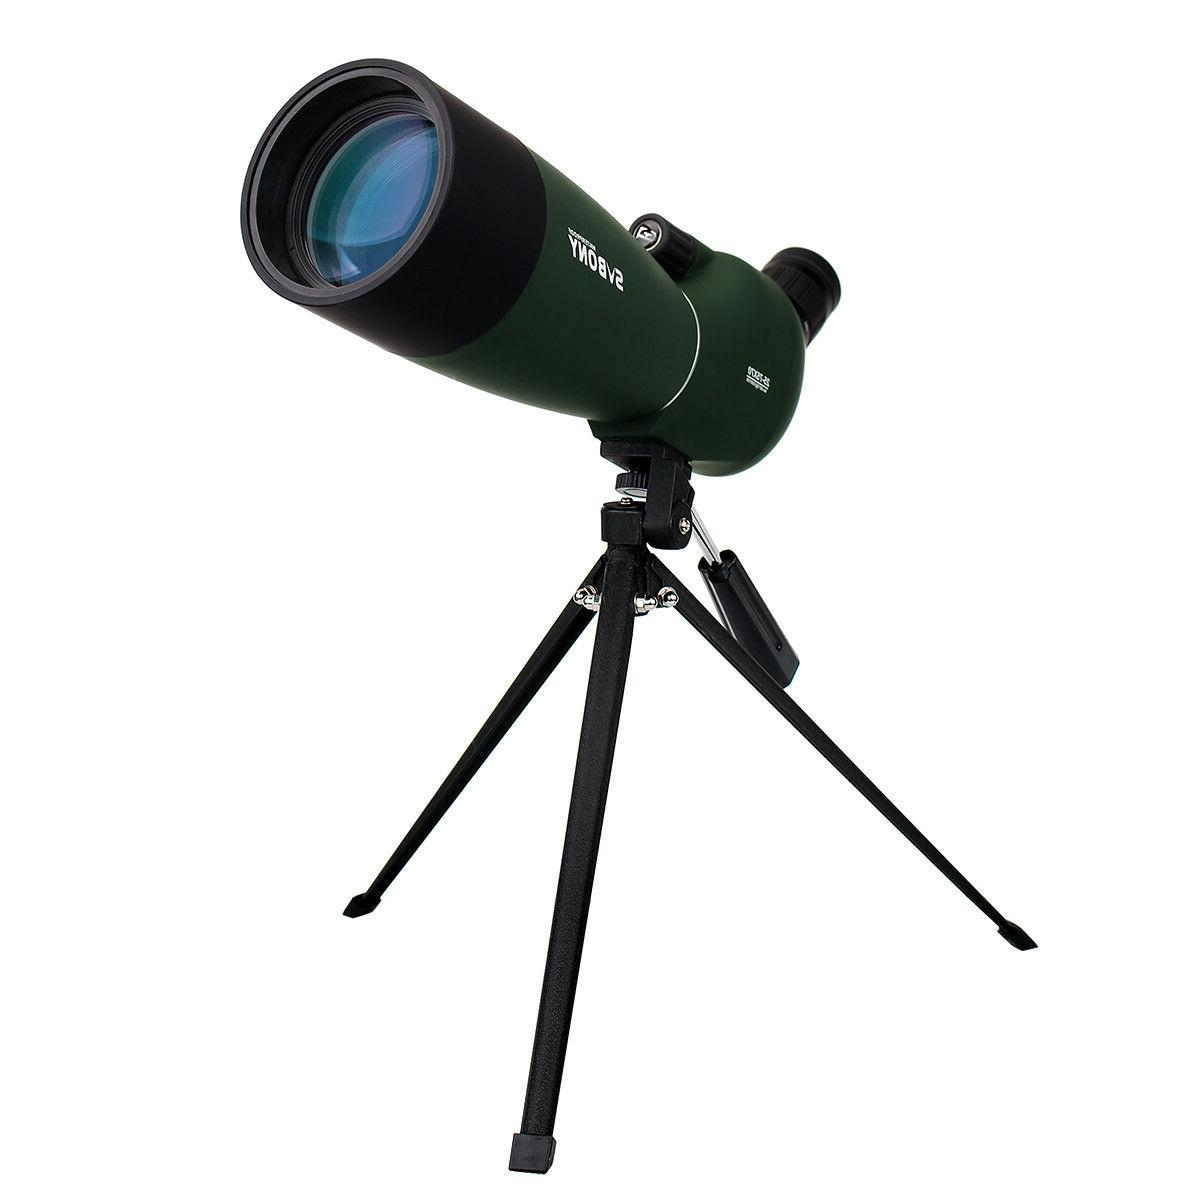 SVBONY SV28 25-75x70mm Zoom Scope Telescope Angled